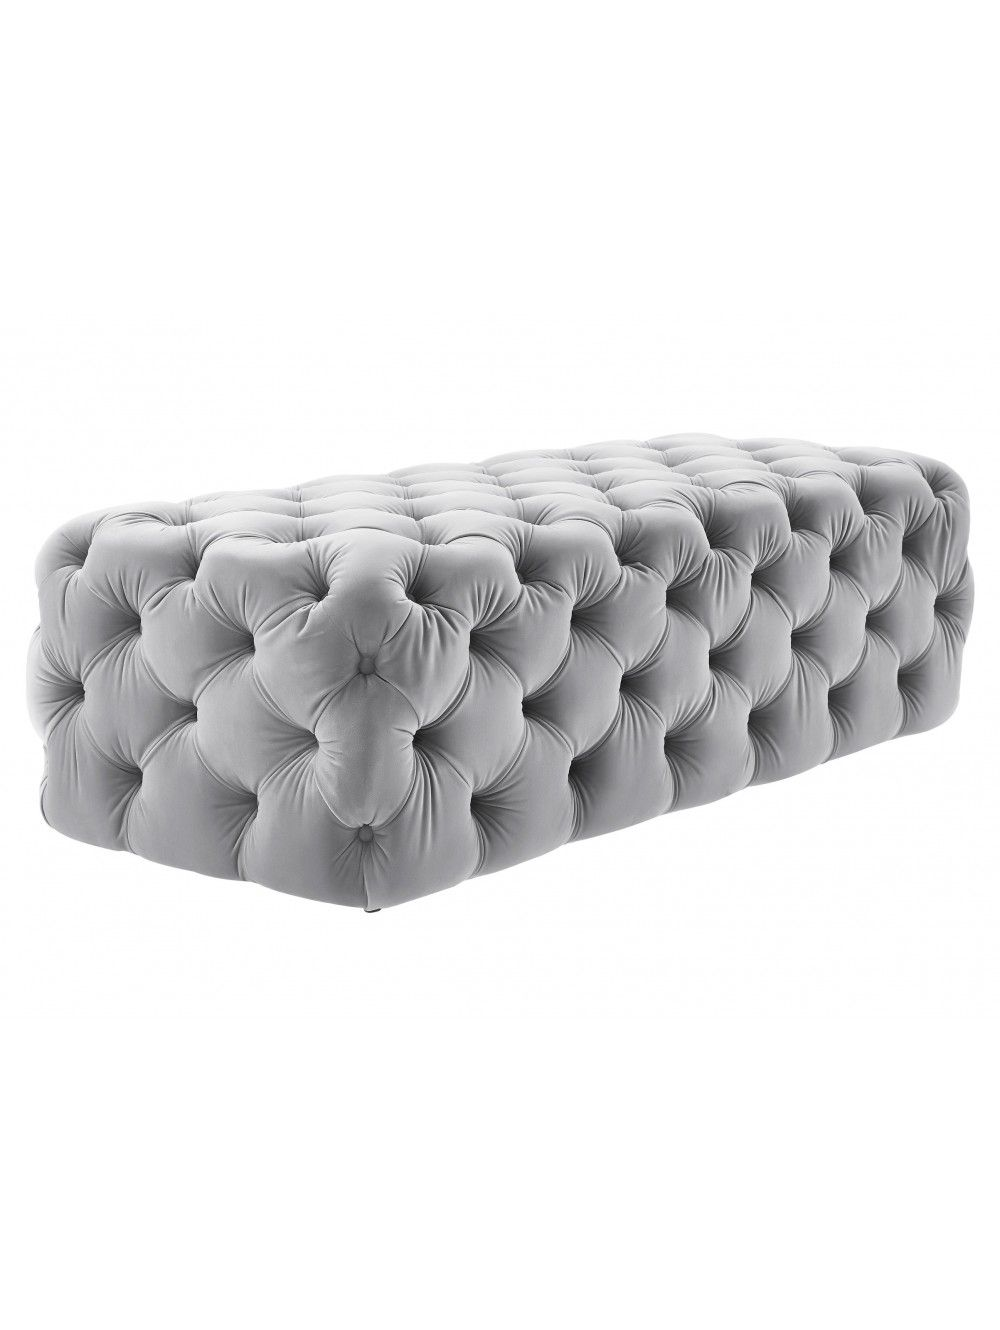 dunam velvet ottoman gray ottomans spaces and room